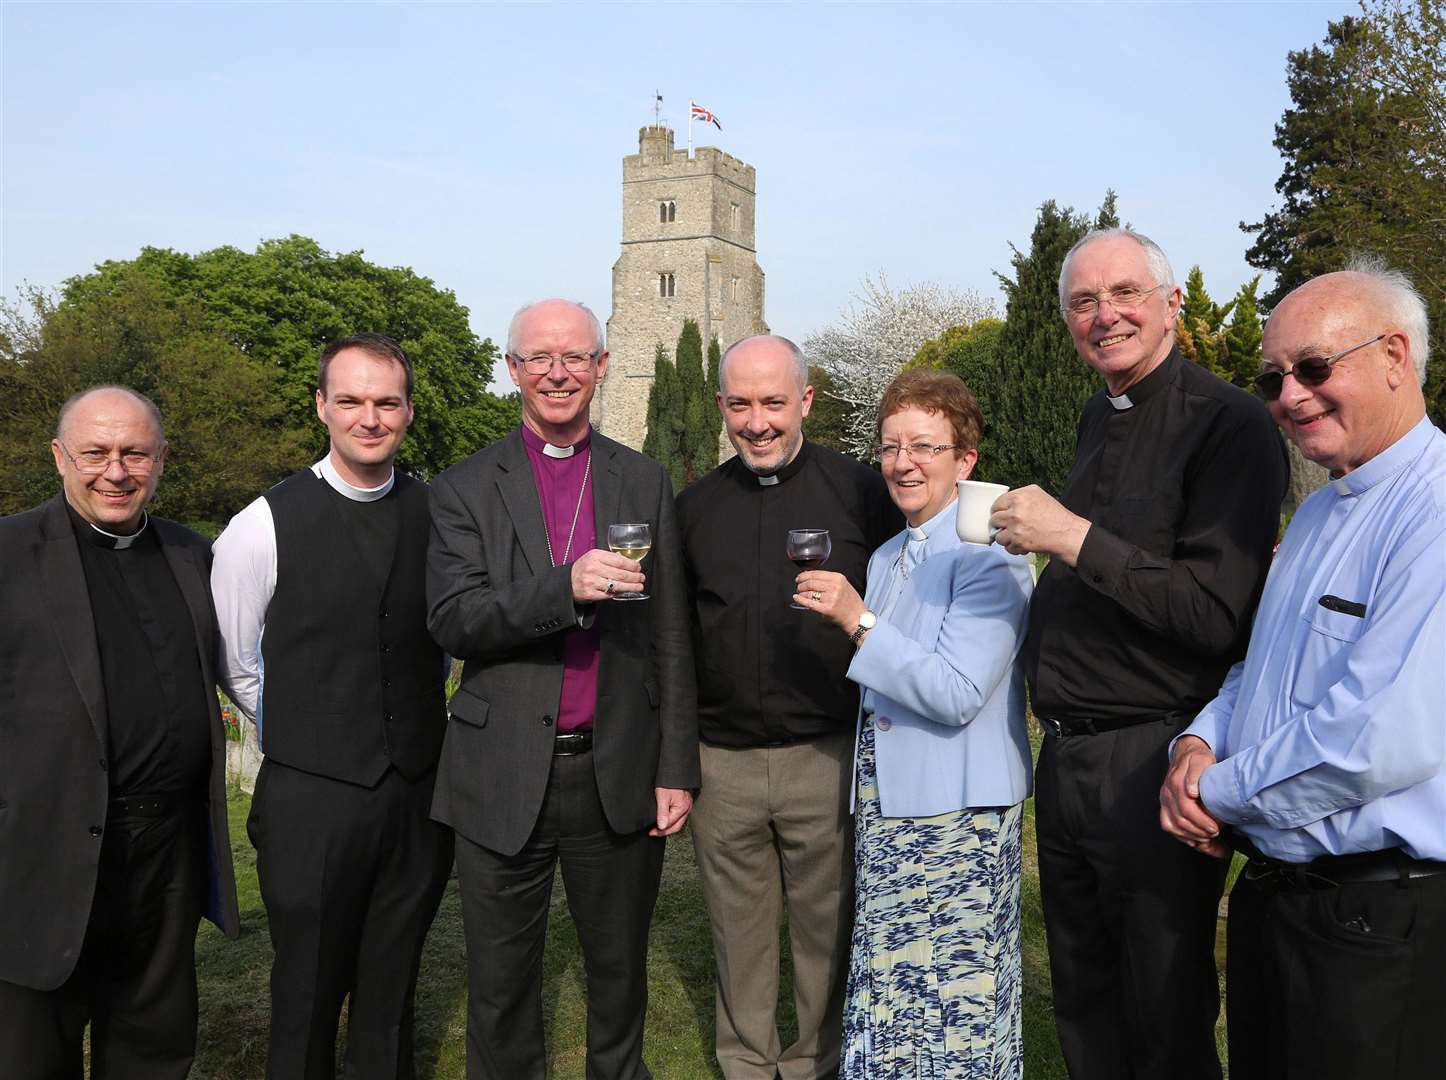 From left, Rev Jonathan Jennings, assistant priest, Rev James Harratt, curate, Bishop of a Rochester, The Rt Rev James Langstaff, Rev Nathan Ward, Rev Judy Henning, Canon Alan Vousden, Canon Michael O'Connor